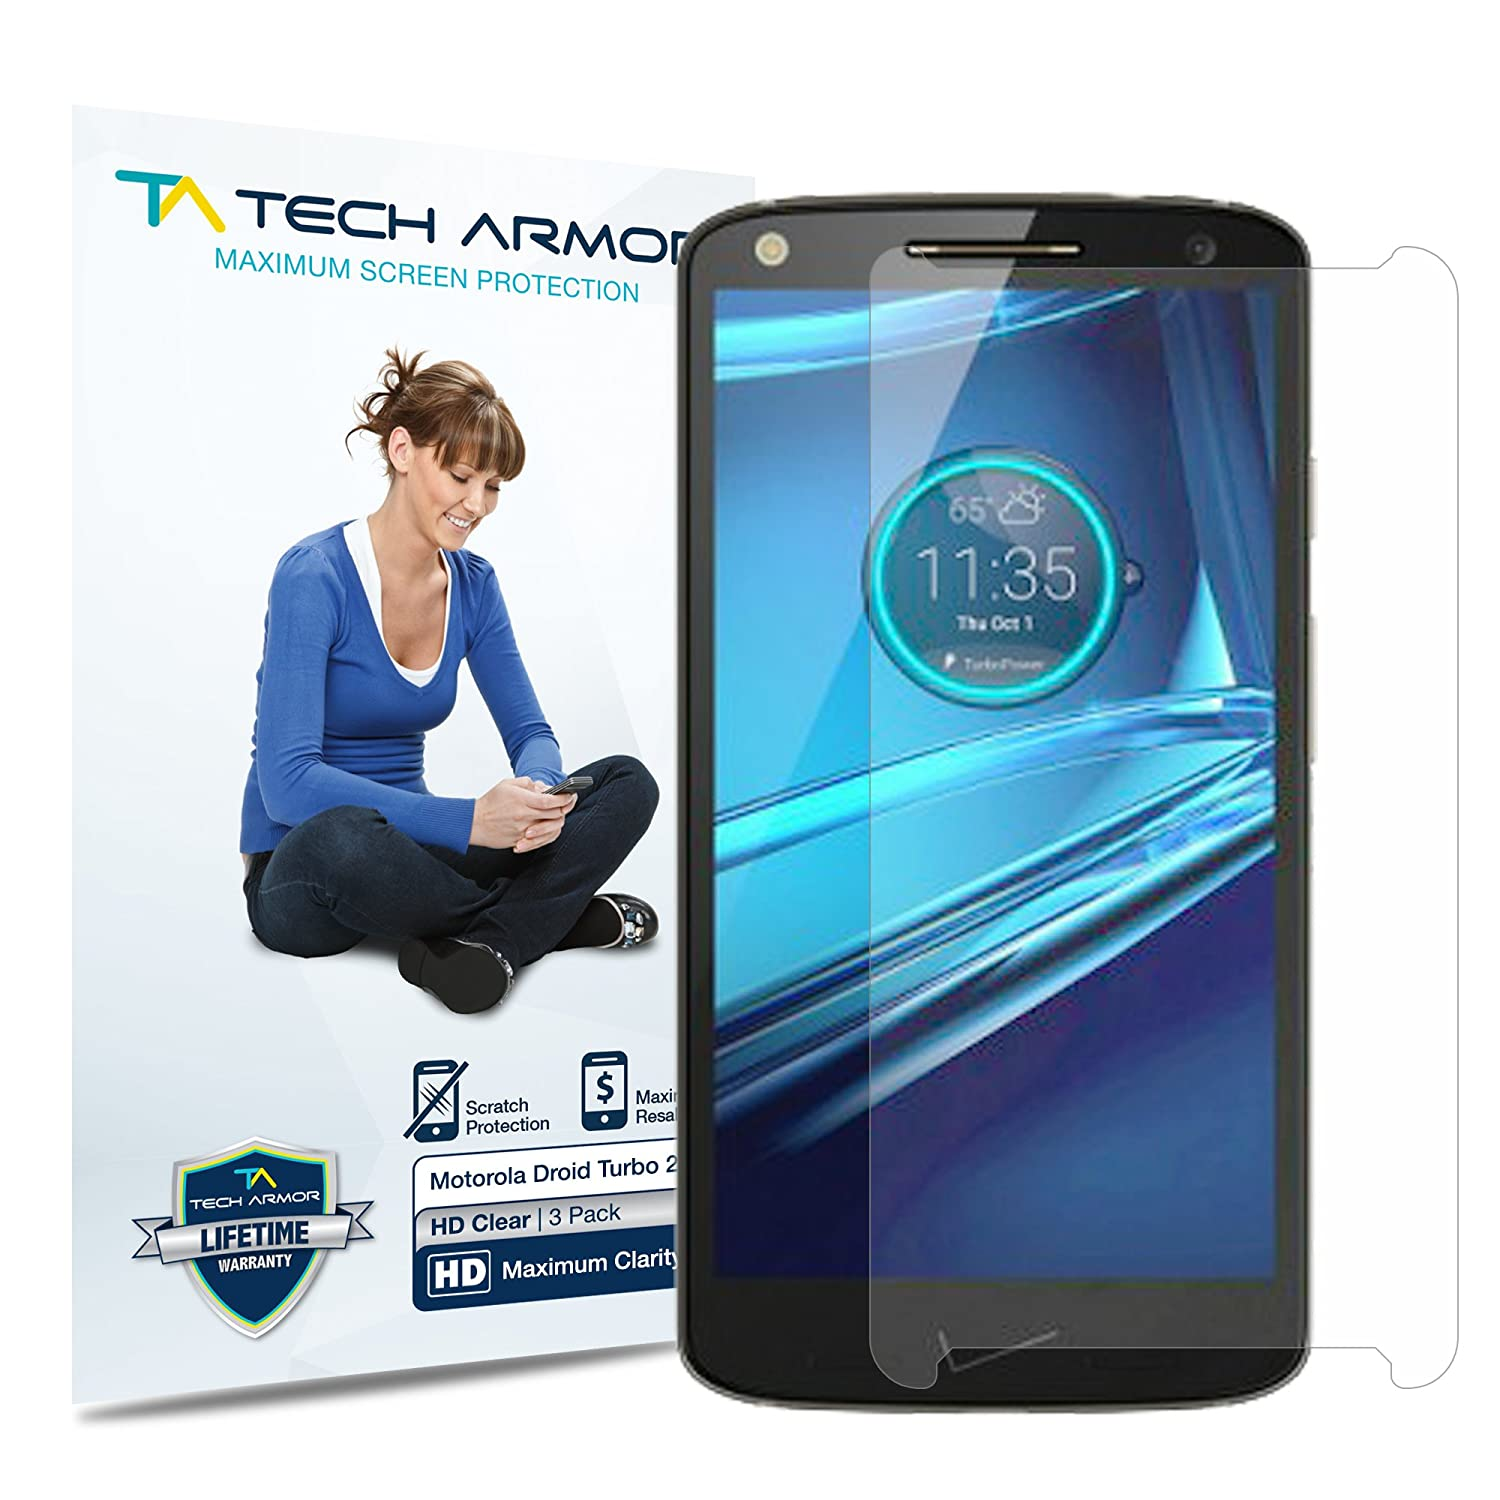 Tech Armor - Pack de 3 Protectores de Pantalla HD-Clear para Droid Turbo 2 de Motorola: Amazon.es: Electrónica